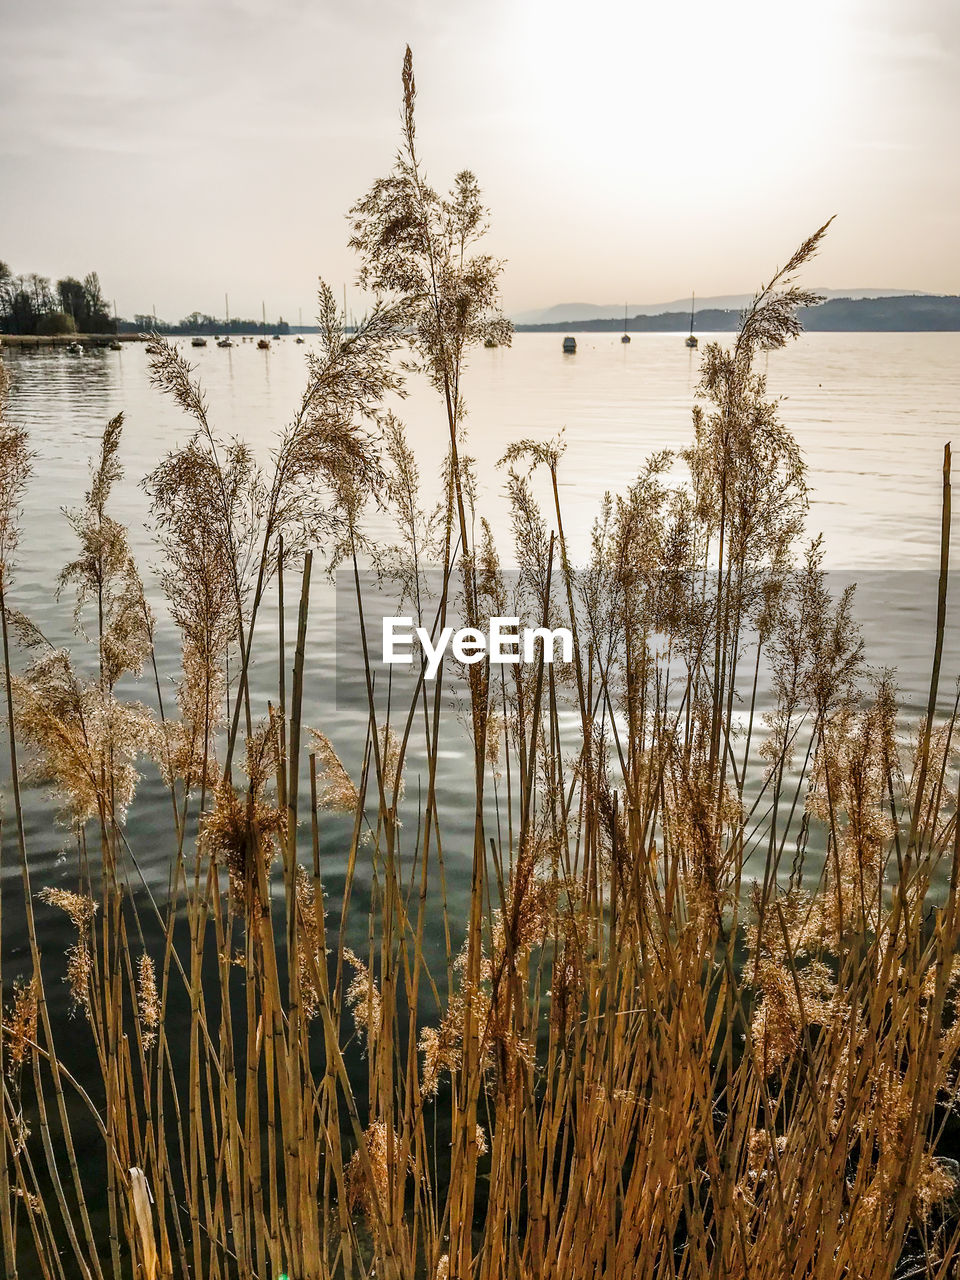 water, tranquility, plant, sky, beauty in nature, tranquil scene, nature, sea, scenics - nature, no people, growth, grass, day, beach, non-urban scene, horizon, outdoors, horizon over water, timothy grass, marram grass